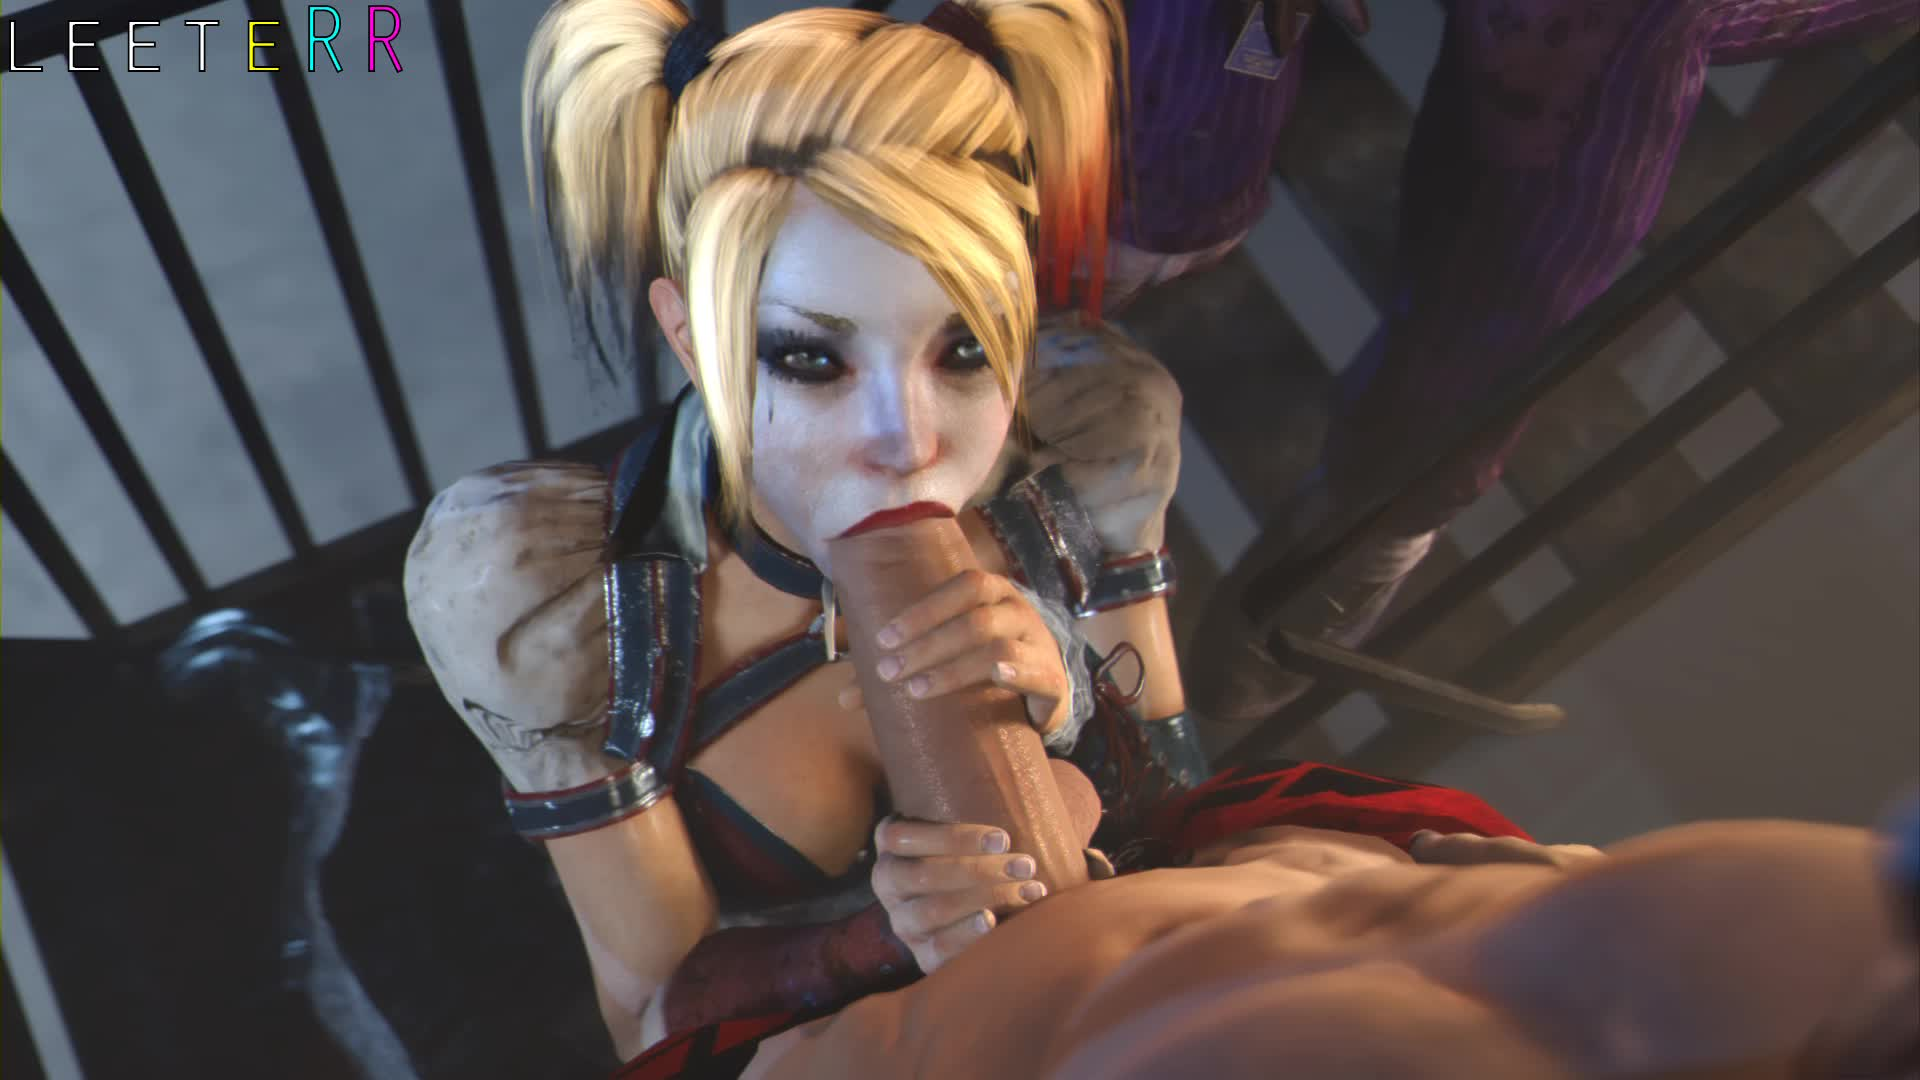 3D Animated Batman Batman_Arkham_Knight Harley_Quinn Leeterr Sound Source_Filmmaker // 1920x1080 // 1.3MB // webm